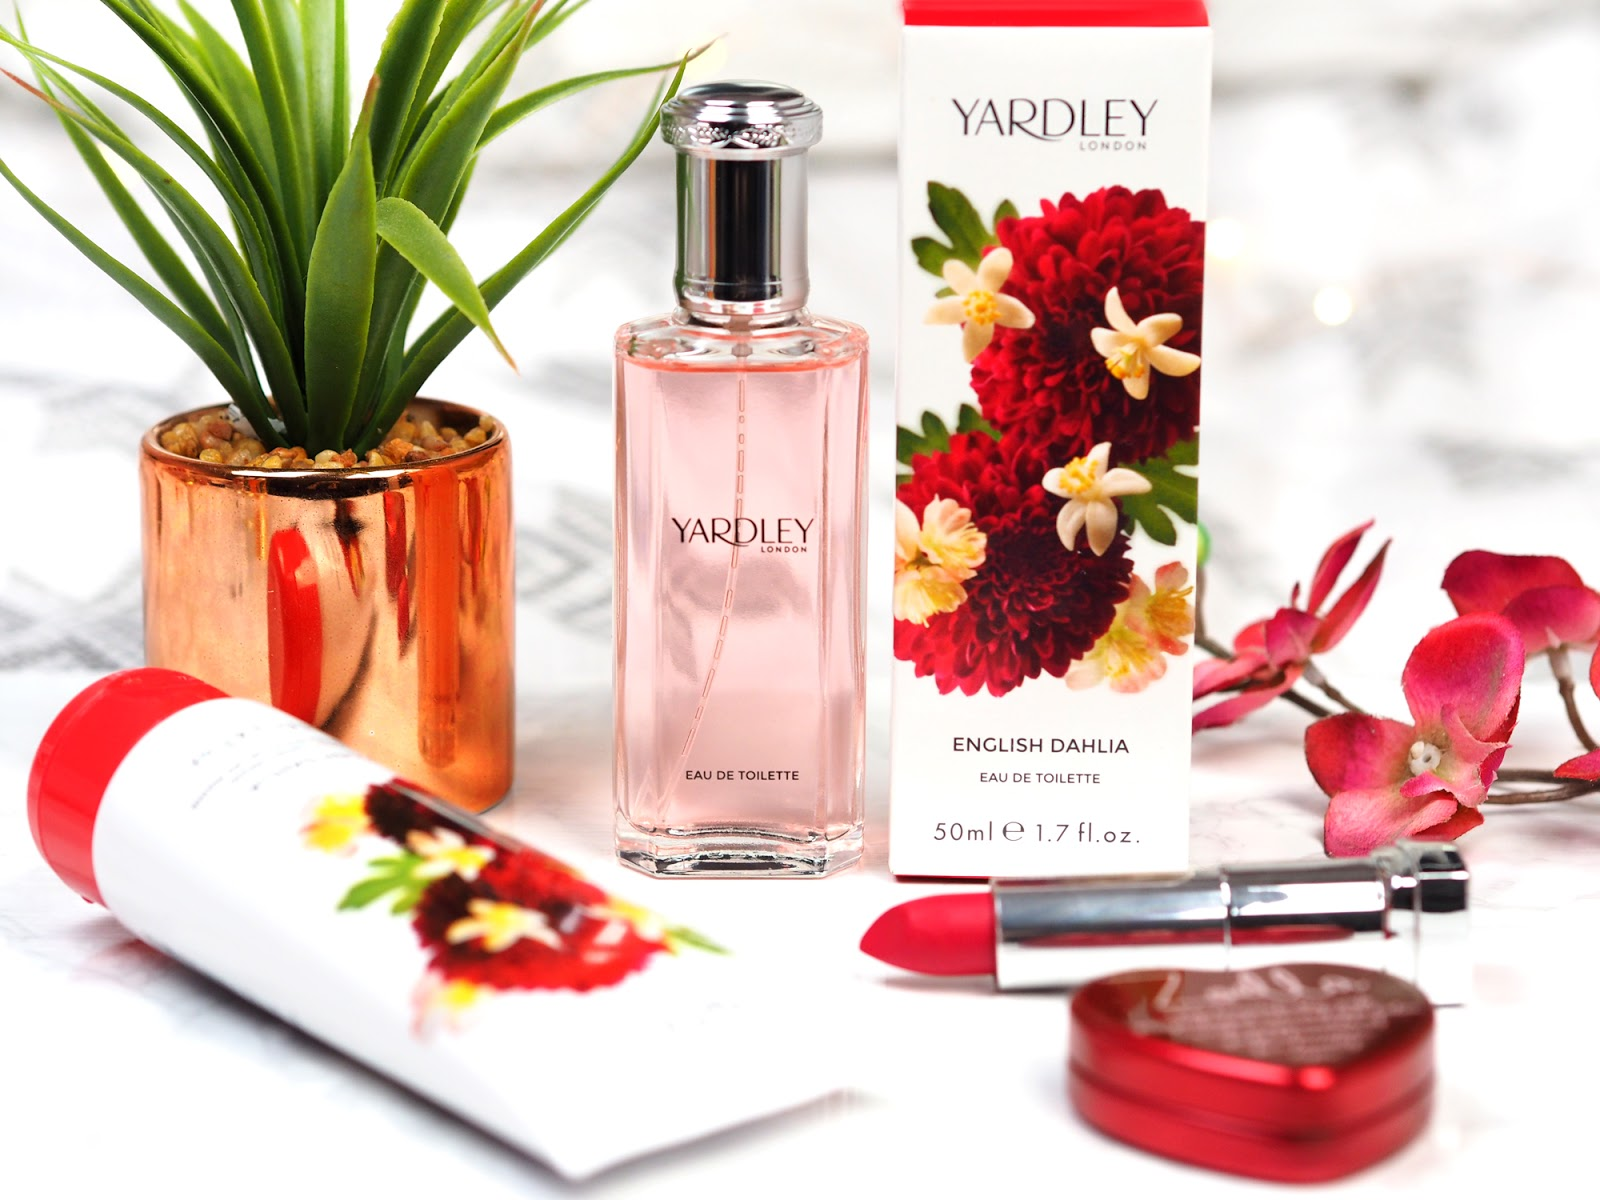 Yardley London English Dahlia Eau de Toilette Review